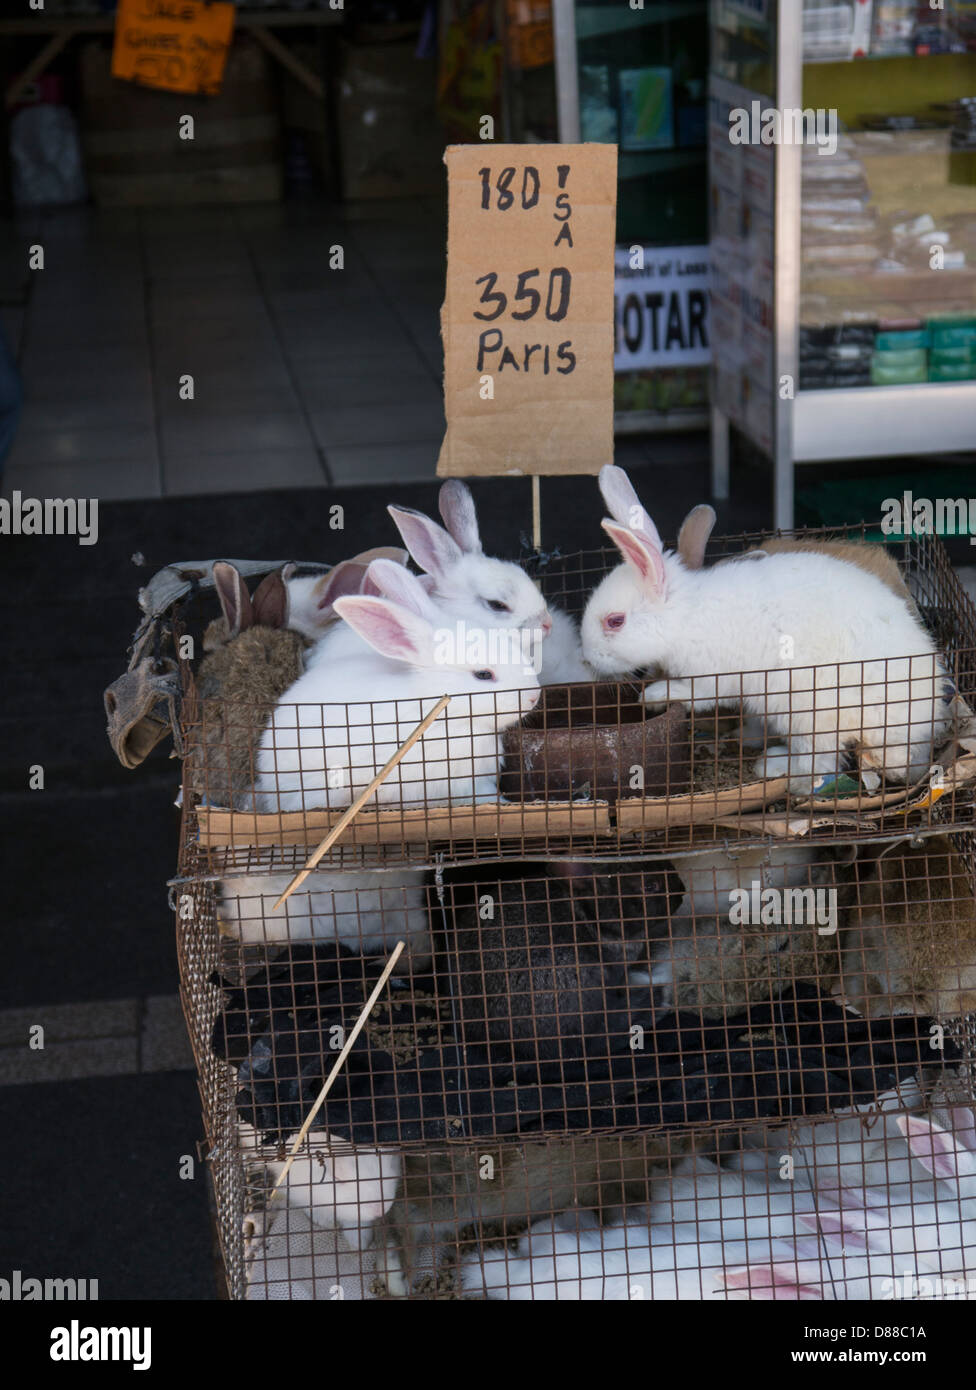 Pictures Of Rabbits For Sale : pictures, rabbits, Rabbit, Resolution, Stock, Photography, Images, Alamy